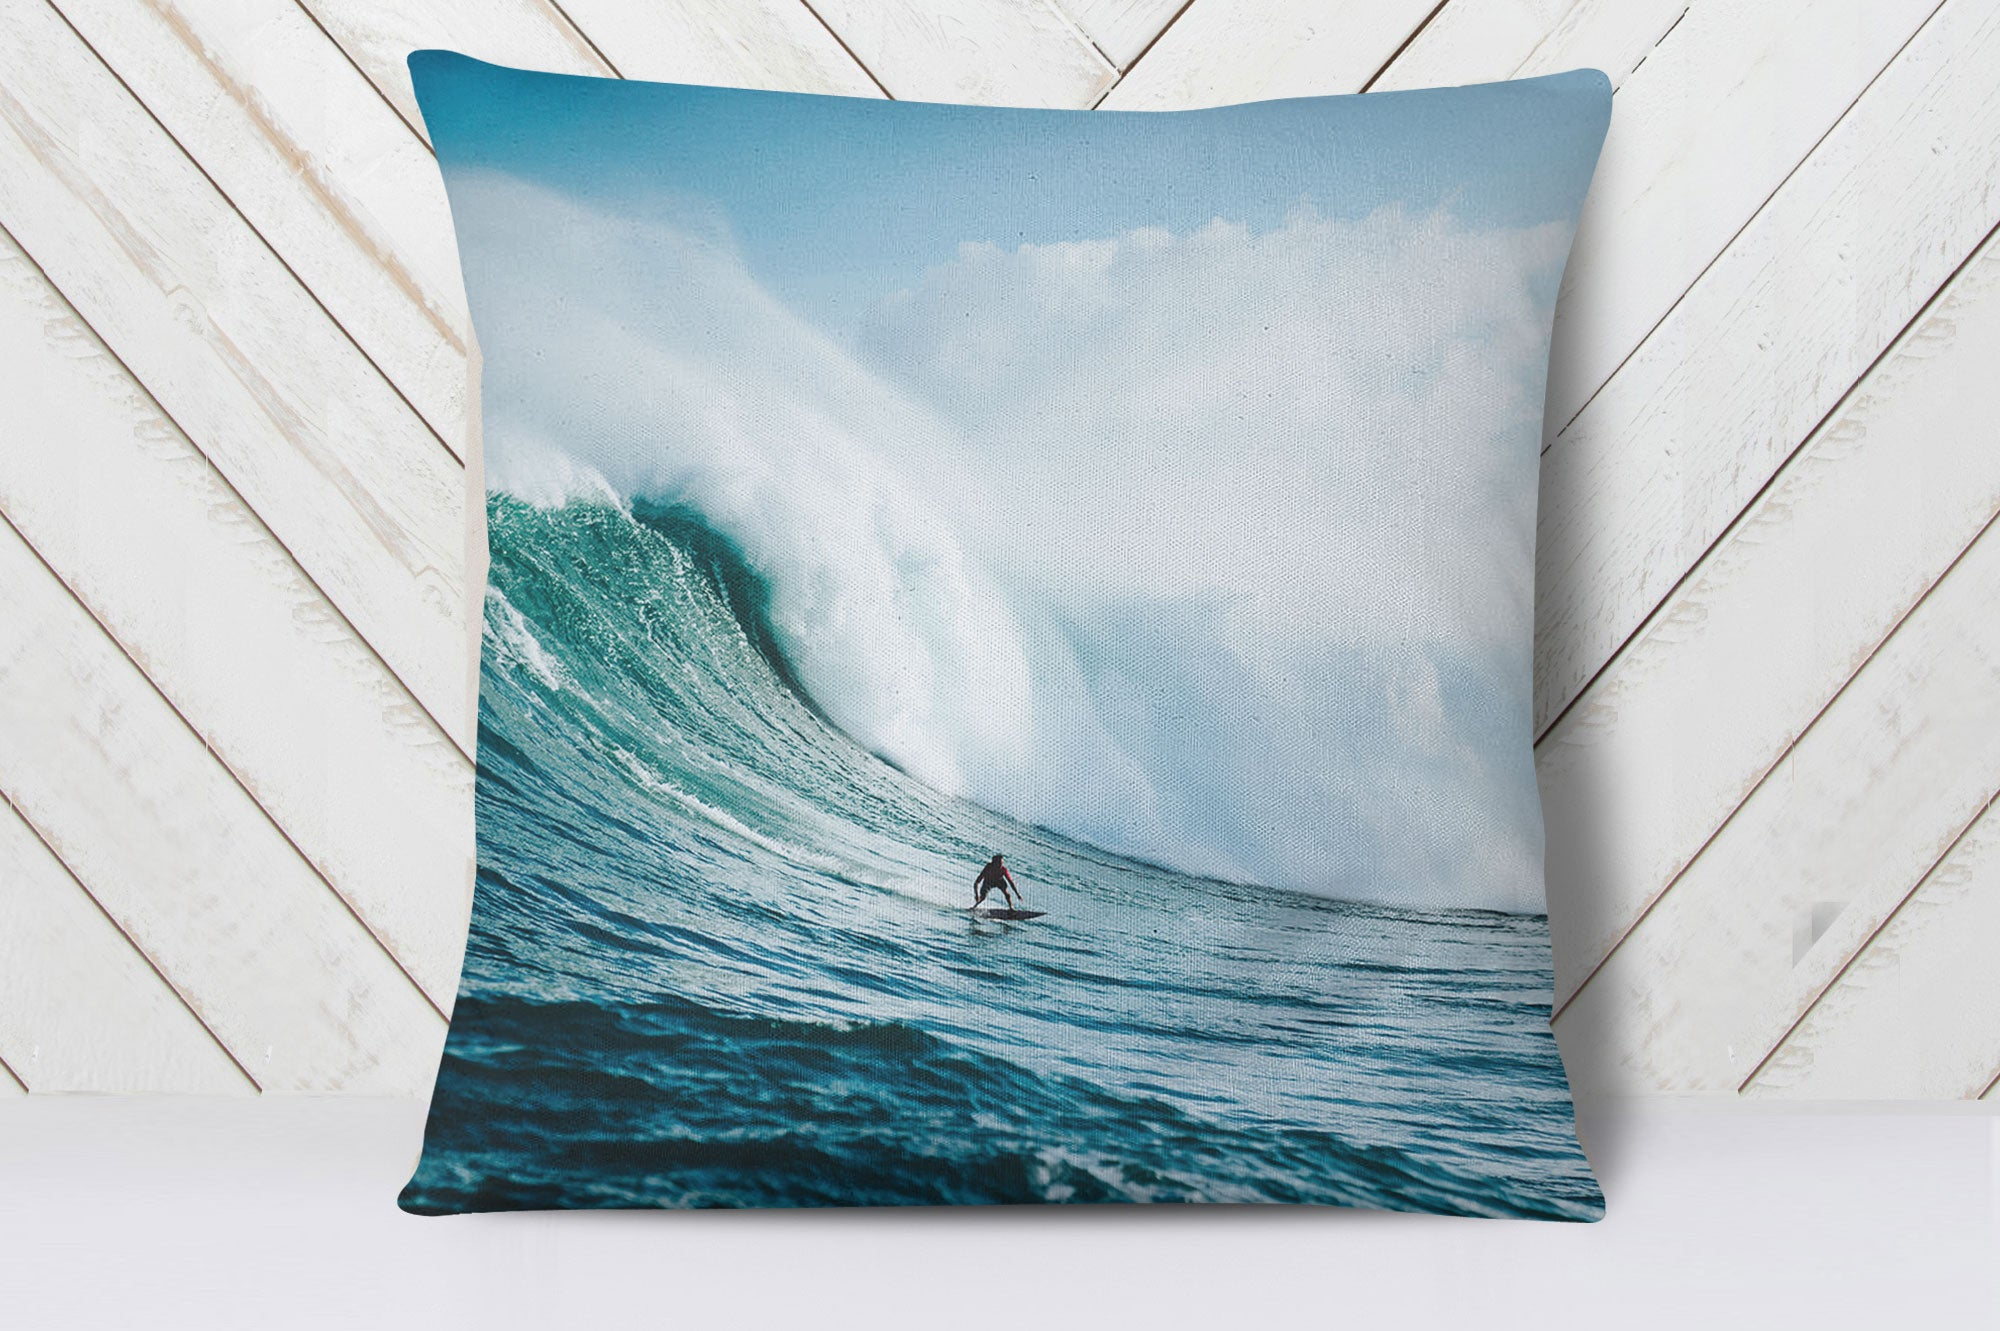 Adrenalin Surfer Cushion Cover